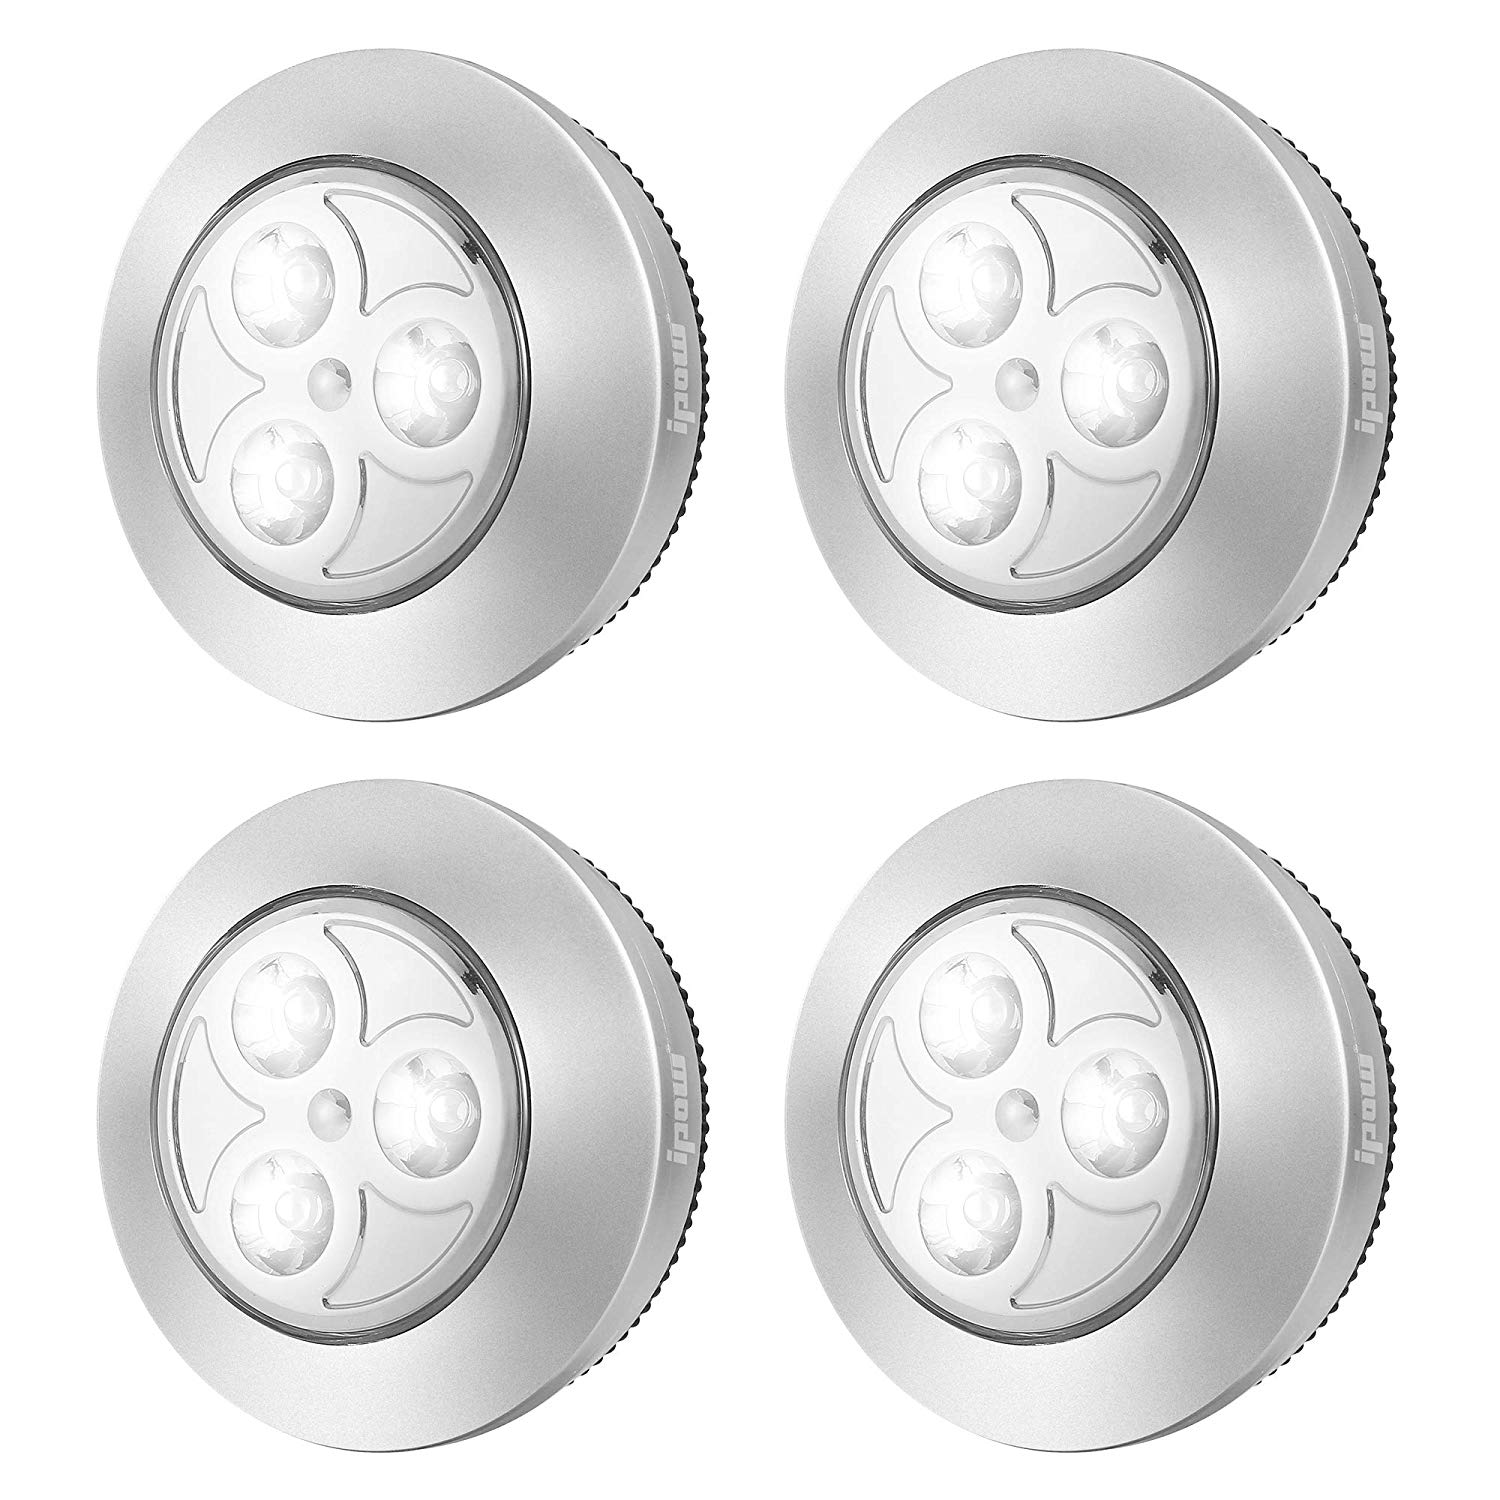 Upgraded Wireless Tap Touch Lights, IPOW YC06 Stick-on LED Battery Operated Push Night Lights Press On Cordless Led Tap Lamp for Closets,Wardrobe,Cabinets,Counters,Utility Rooms, 4 Pack